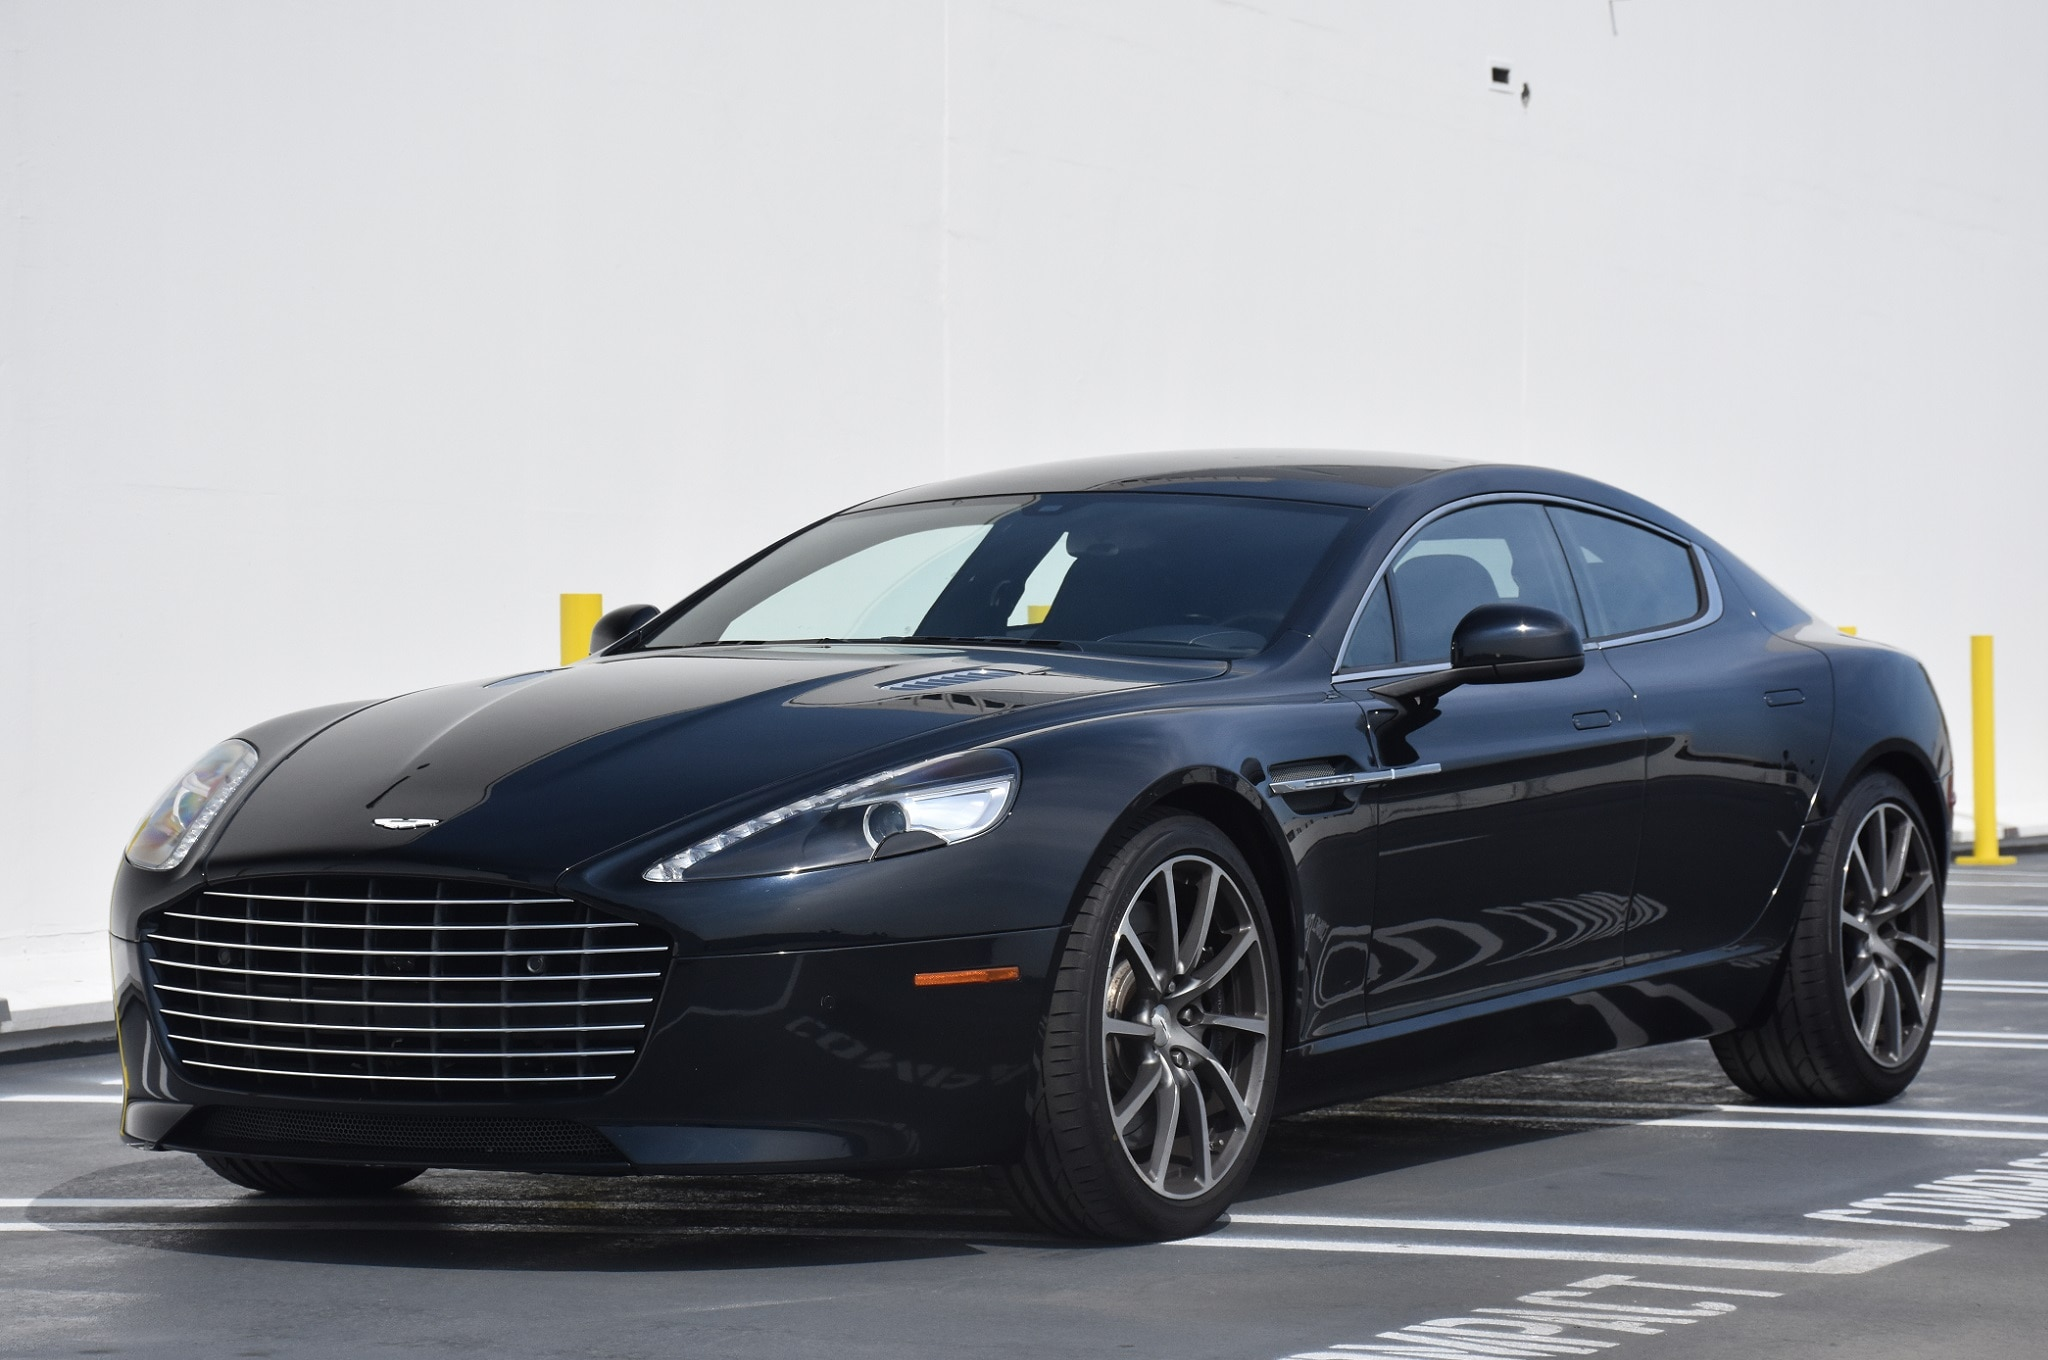 2016 aston martin rapide price 2017 2018 best cars reviews. Black Bedroom Furniture Sets. Home Design Ideas